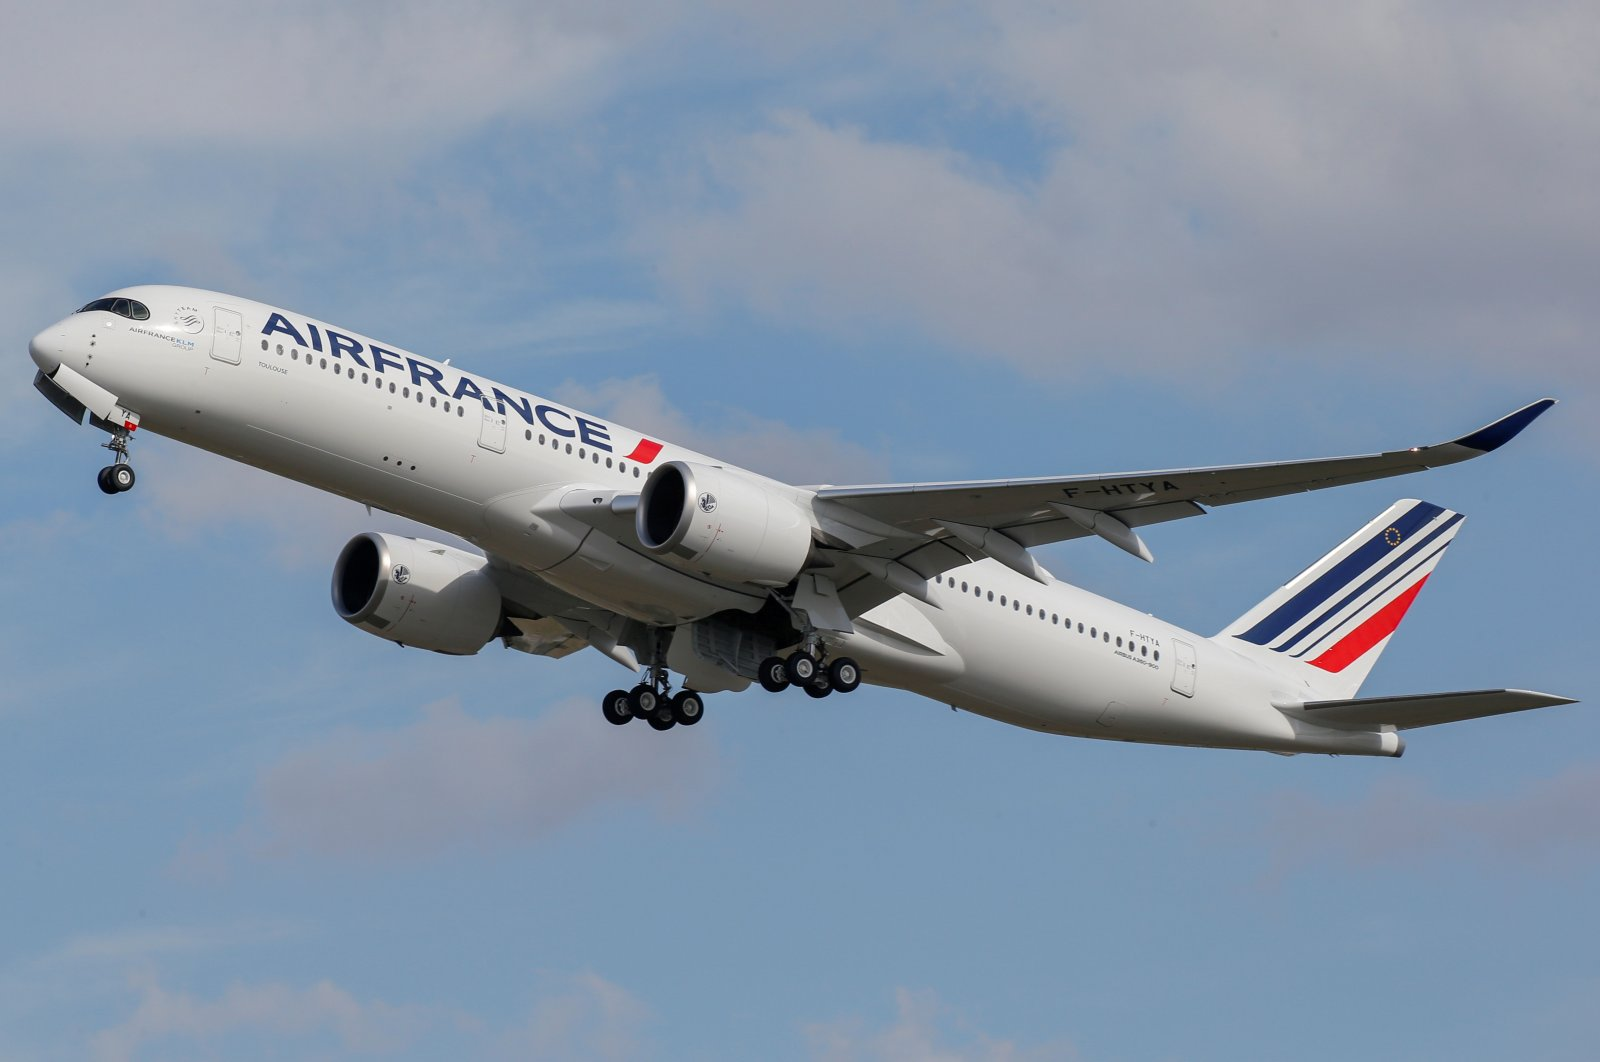 The first Air France Airbus A350 takes off after a ceremony at the aircraft maker's headquarters in Colomiers near Toulouse, France, Sept. 27, 2019. (Reuters Photo)